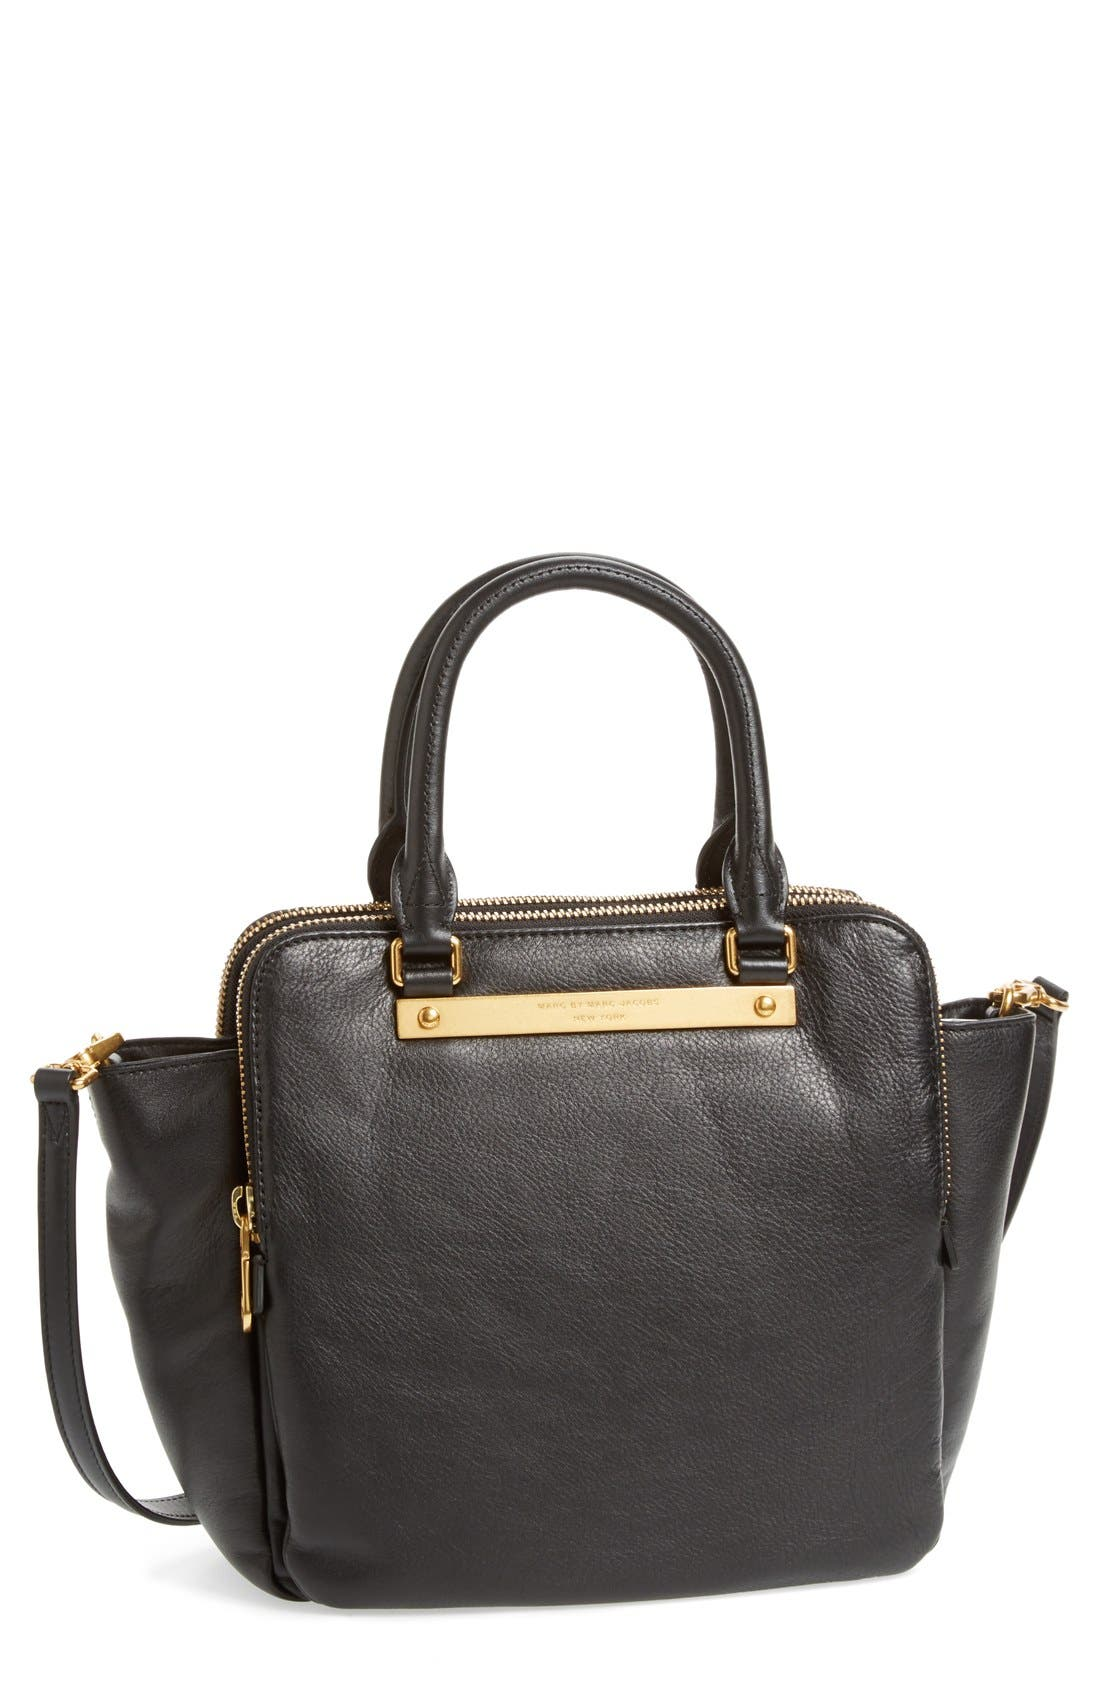 MARC BY MARC JACOBS 'Goodbye Columbus' Leather Satchel, Main, color, 001